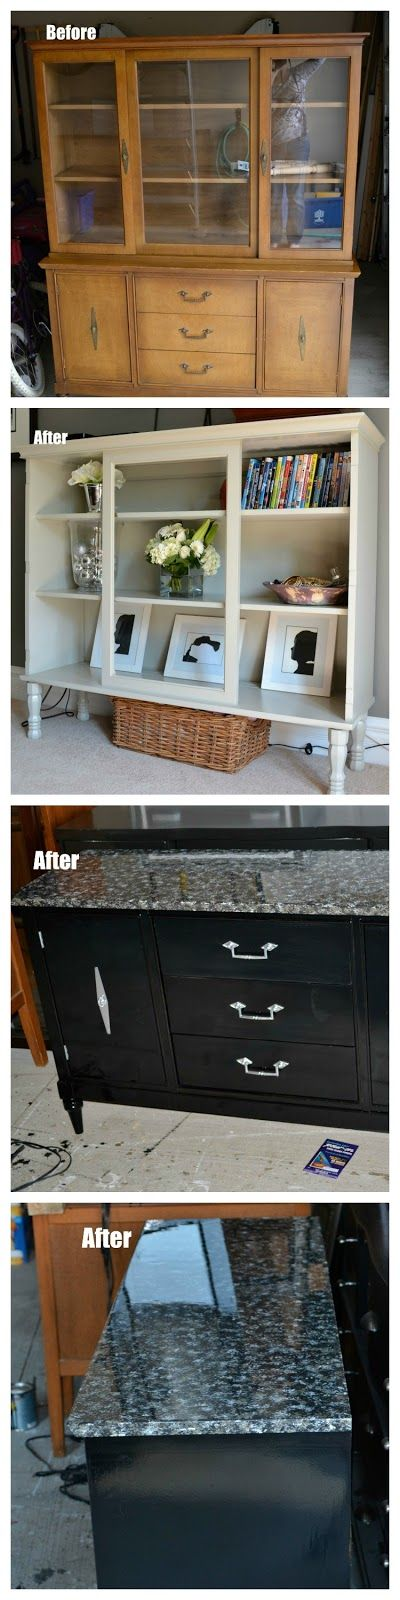 I bet every one of us has a grandmother or mother with one of these. Great way to update and repurpose an old unattractive, piece!